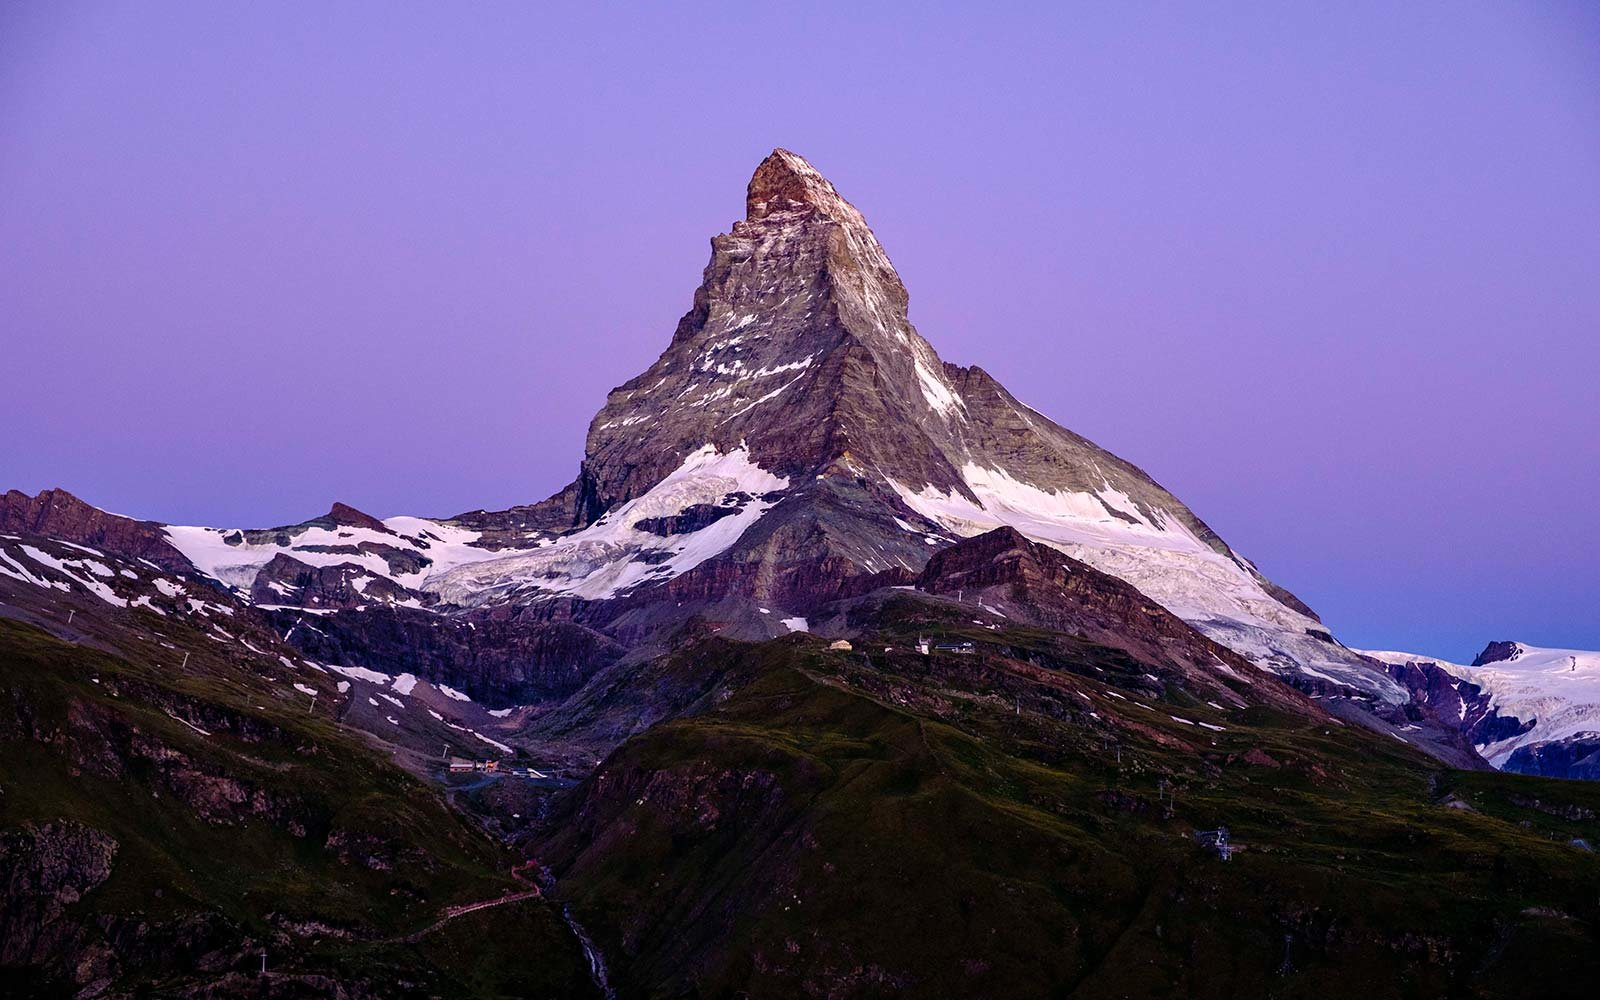 Pantone Purple Matterhorn Monte Cervino Switzerland